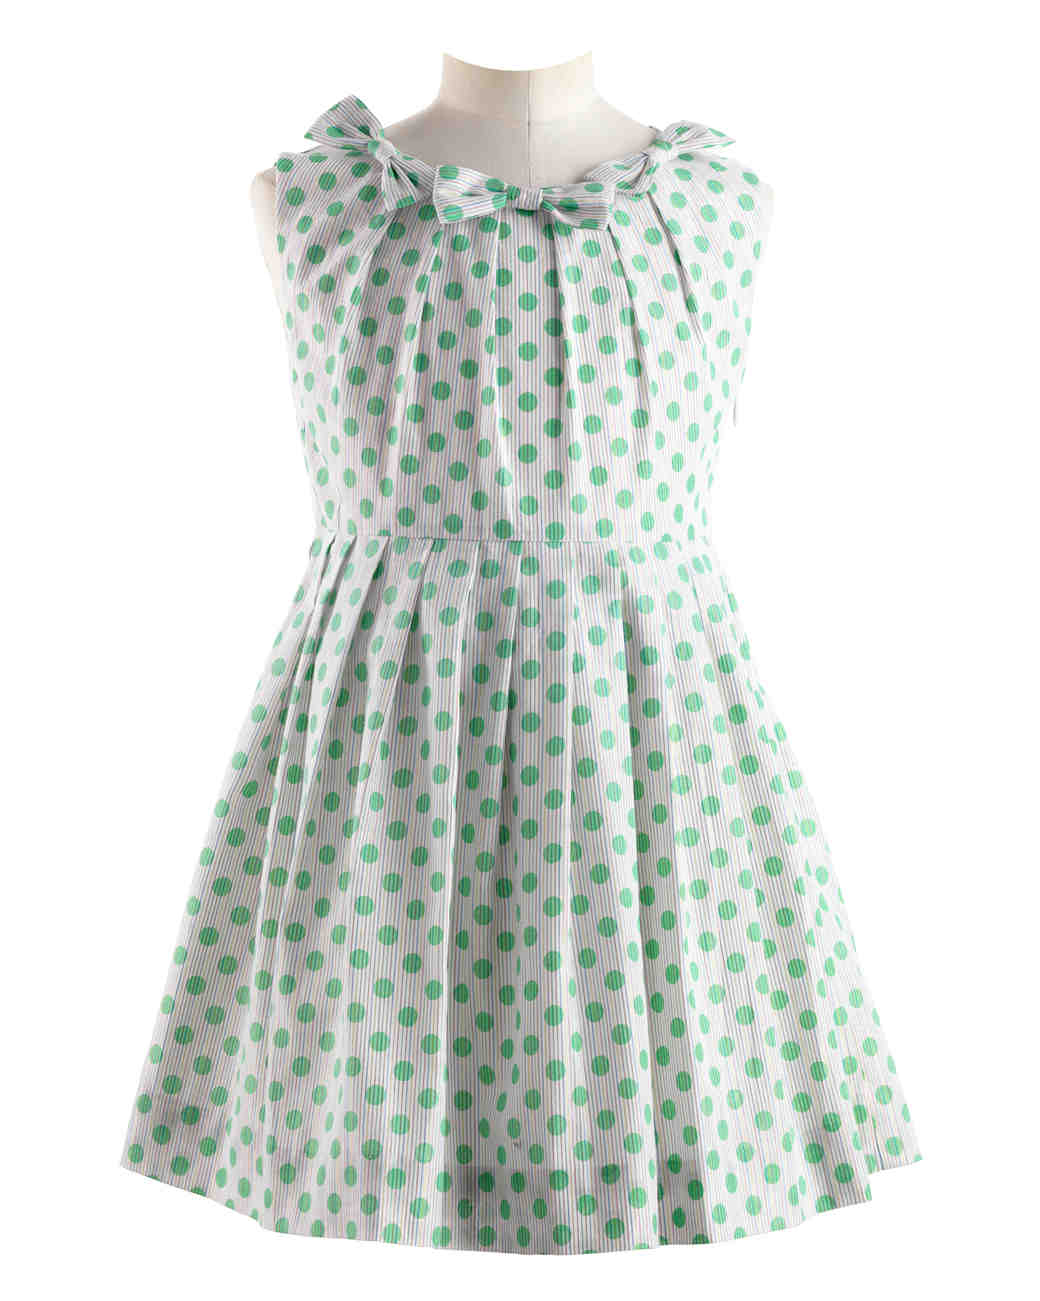 flower-girl-dress-rachel-riley-polka-dot-1214.jpg